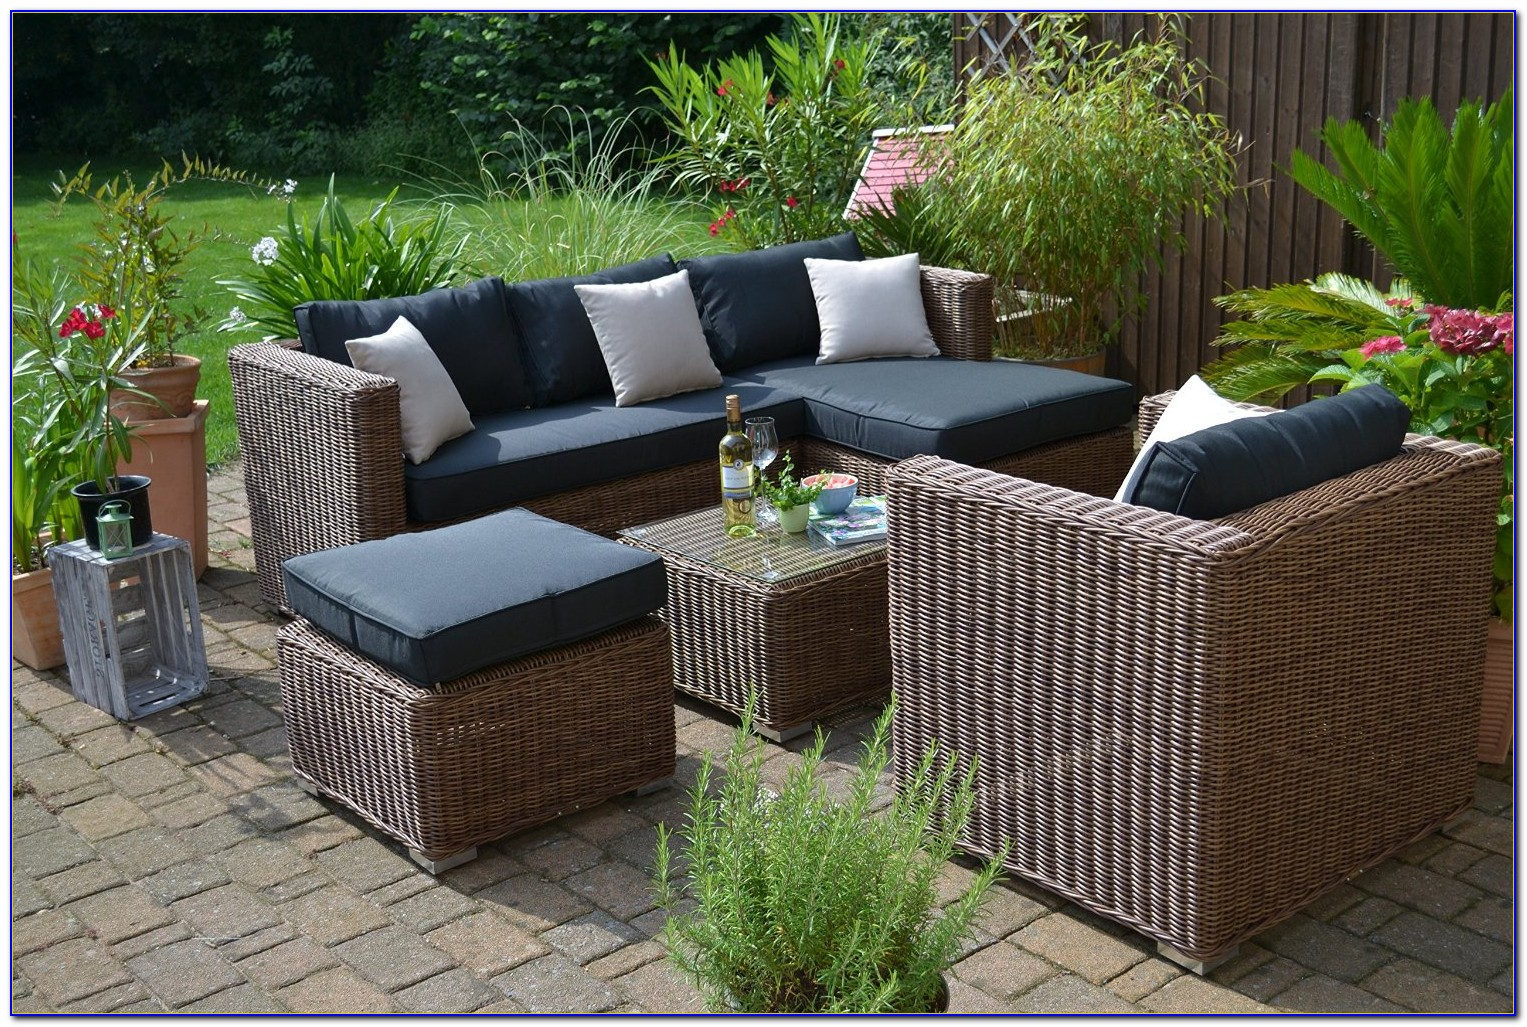 Outdoor Möbel Rattan